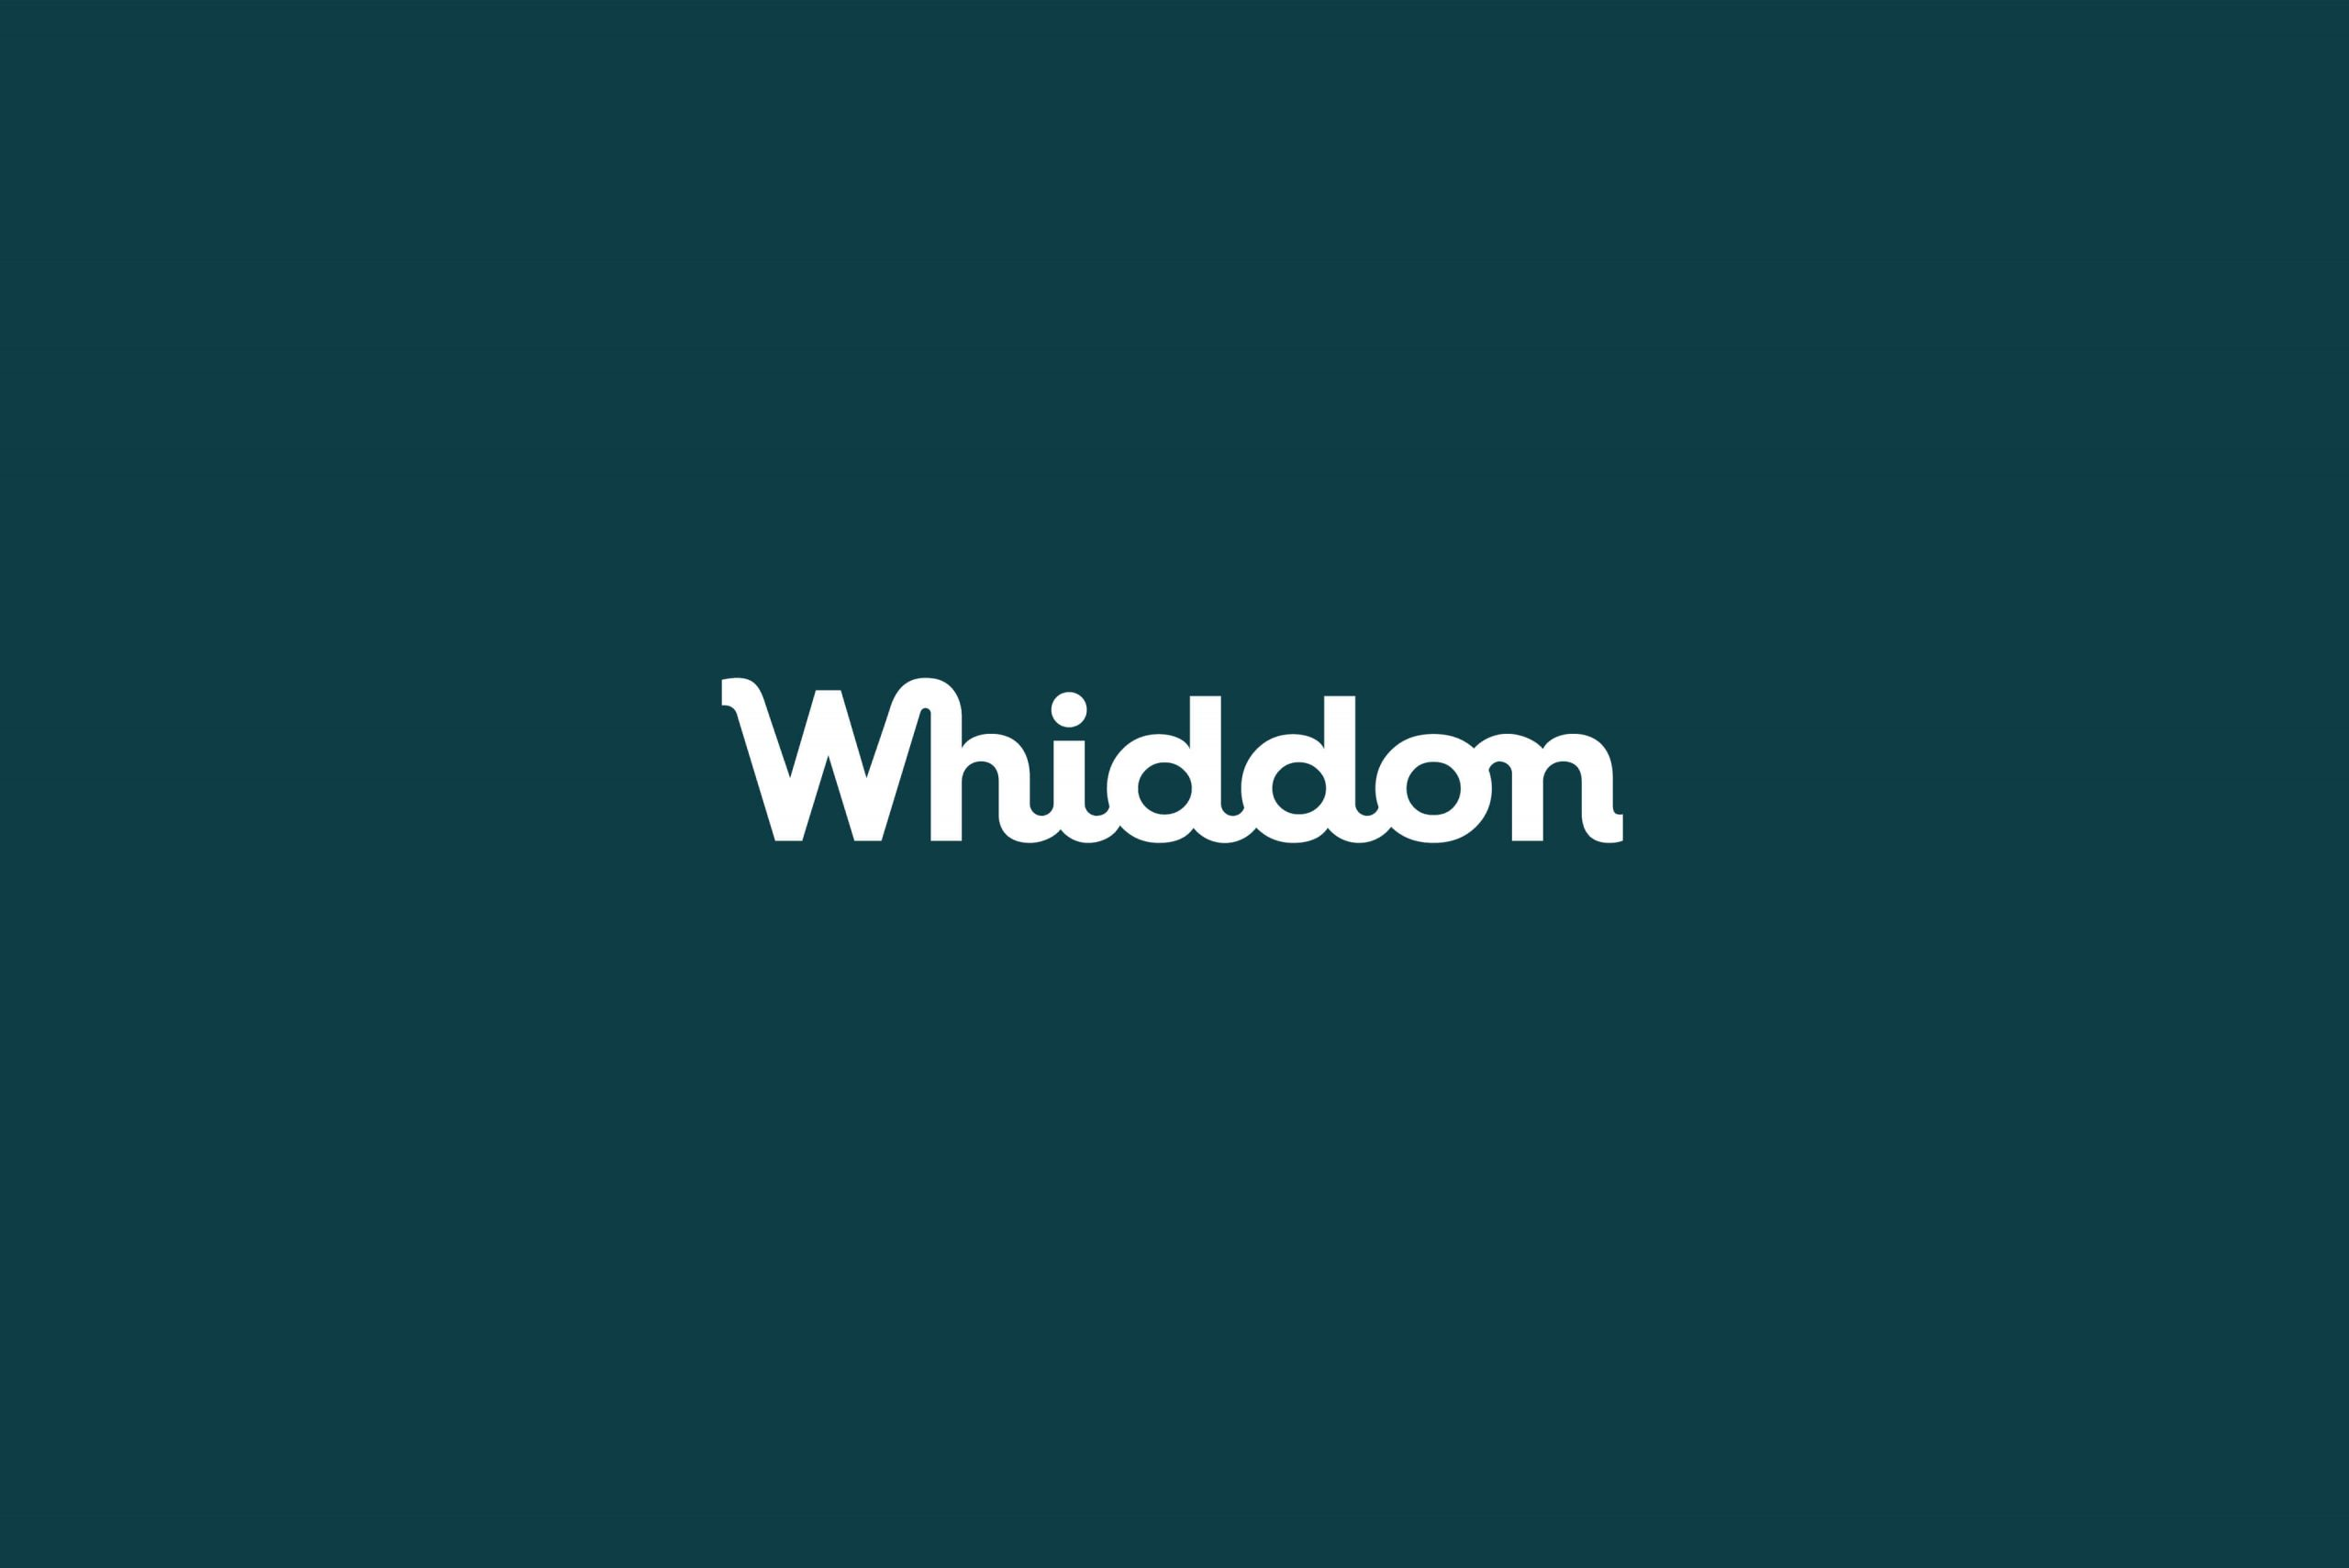 Whiddon Brand Refresh - Connected brand logotype